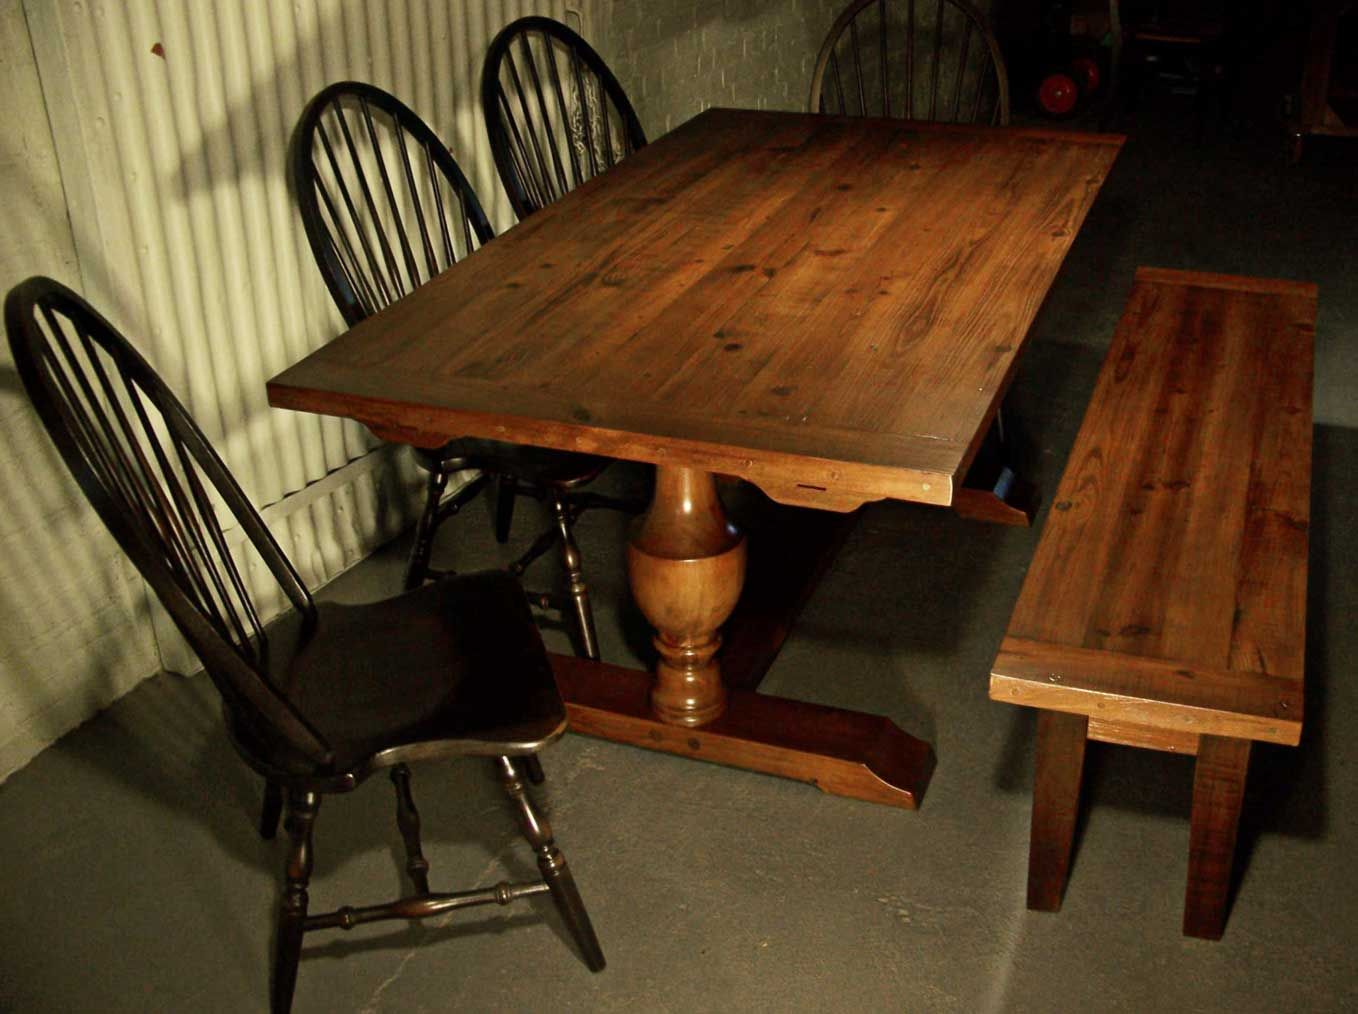 Custom Dining Tables Design Your Own Table Online Wood Trestle Table Reclaimed Wood Table Barn Wood